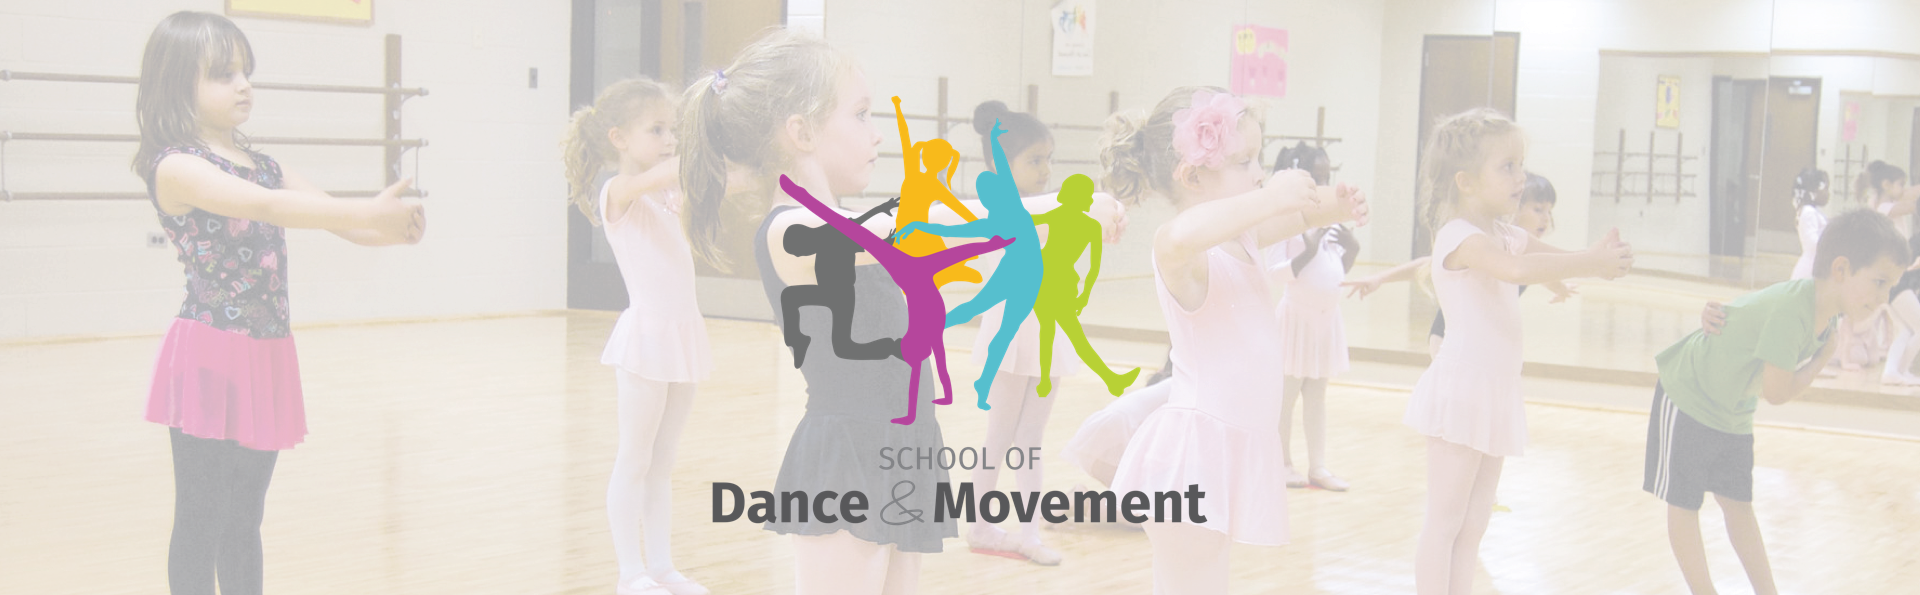 School of Dance & Movement.